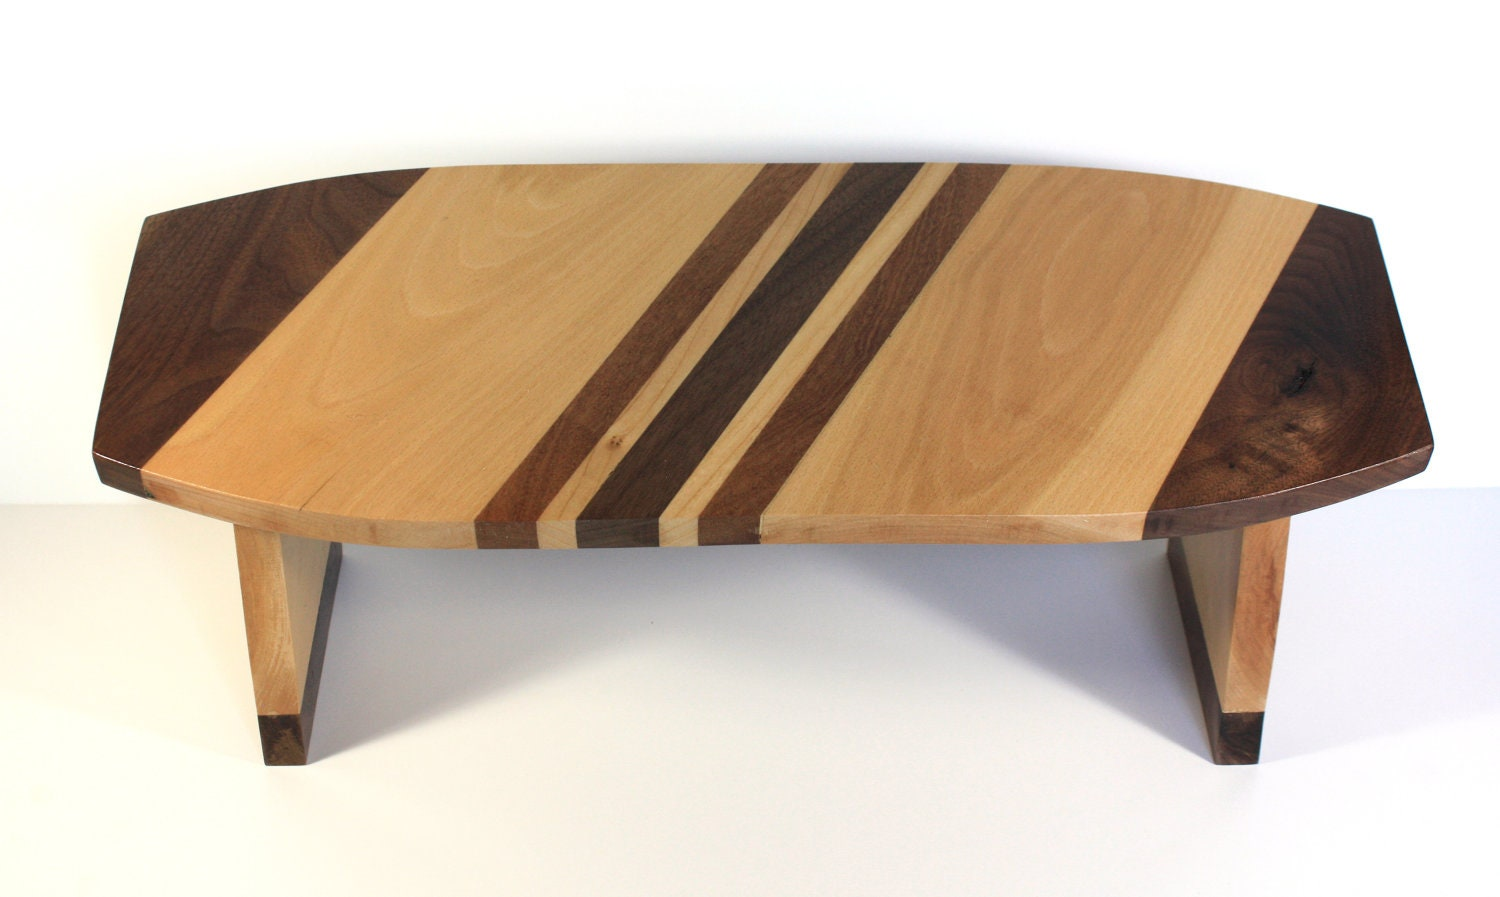 Folding Meditation Bench Featuring Maple Dark By Lhasaartisanbrand